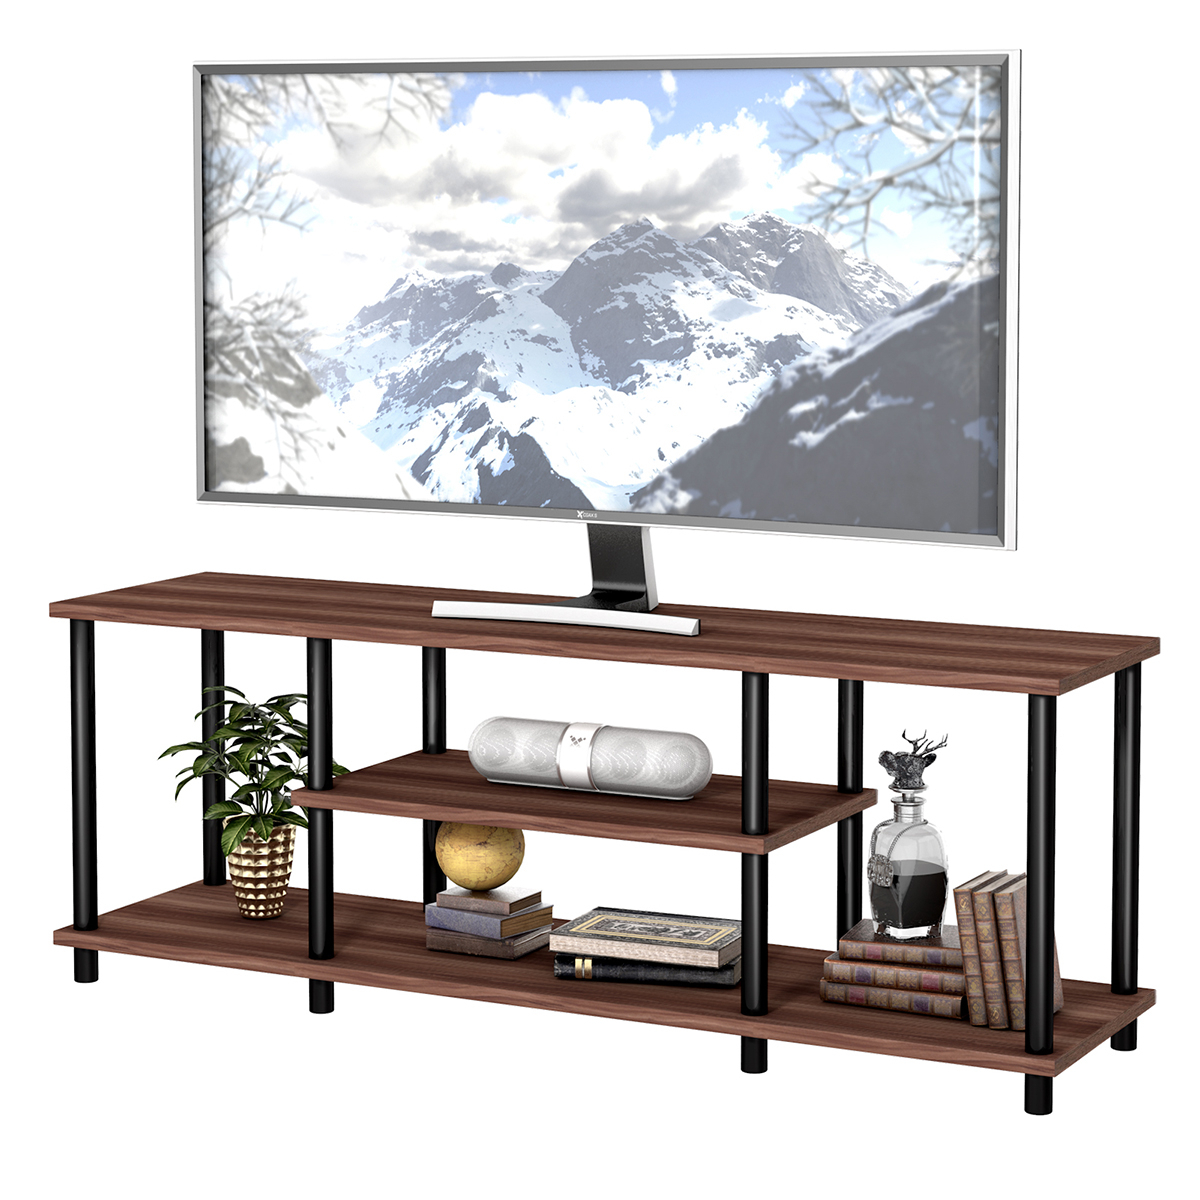 3 Tier Wood Tv Stand Media Game Console Storage Cabinet Intended For Tier Entertainment Tv Stands In Black (View 6 of 15)